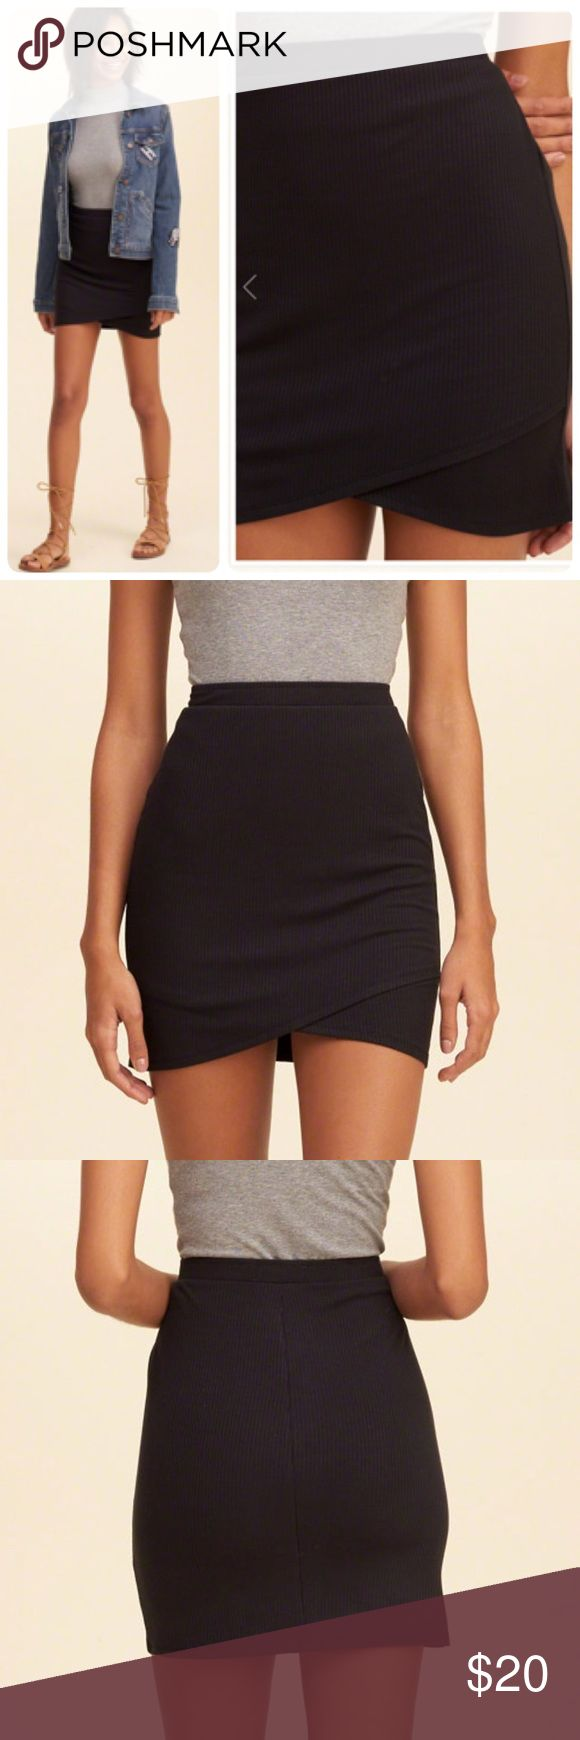 NEW HOLLISTER  WRAP FRONT BODYCON SKIRT SIZE L -BRAND NEW WITH TAG -SIZE: LARGE -COLOR: BLACK -98% VISCOSE; 2%ELASTANE -DO NOT DRY CLEAN -;AY FLAT TO DRY -LOW IRON IF NEEDED -MACHINE WASH COLD WITH LIKE COLORS -ONLY NON-CHLORINE BLEACH -MADE IN GUATEMALA  -MODEL IS 5'8           ⚠️⚠️⚠️CLOTHING MIGHT BE WRINKLE DURING PACKAGING⚠️⚠️⚠️       ⭐RATED SELLER  👍FAST SHIPPER NEXT DAY SHIPPING  ❌NO TRADE ❌NO PAYPAL ✅BUNDLE OFFER Hollister Skirts Mini